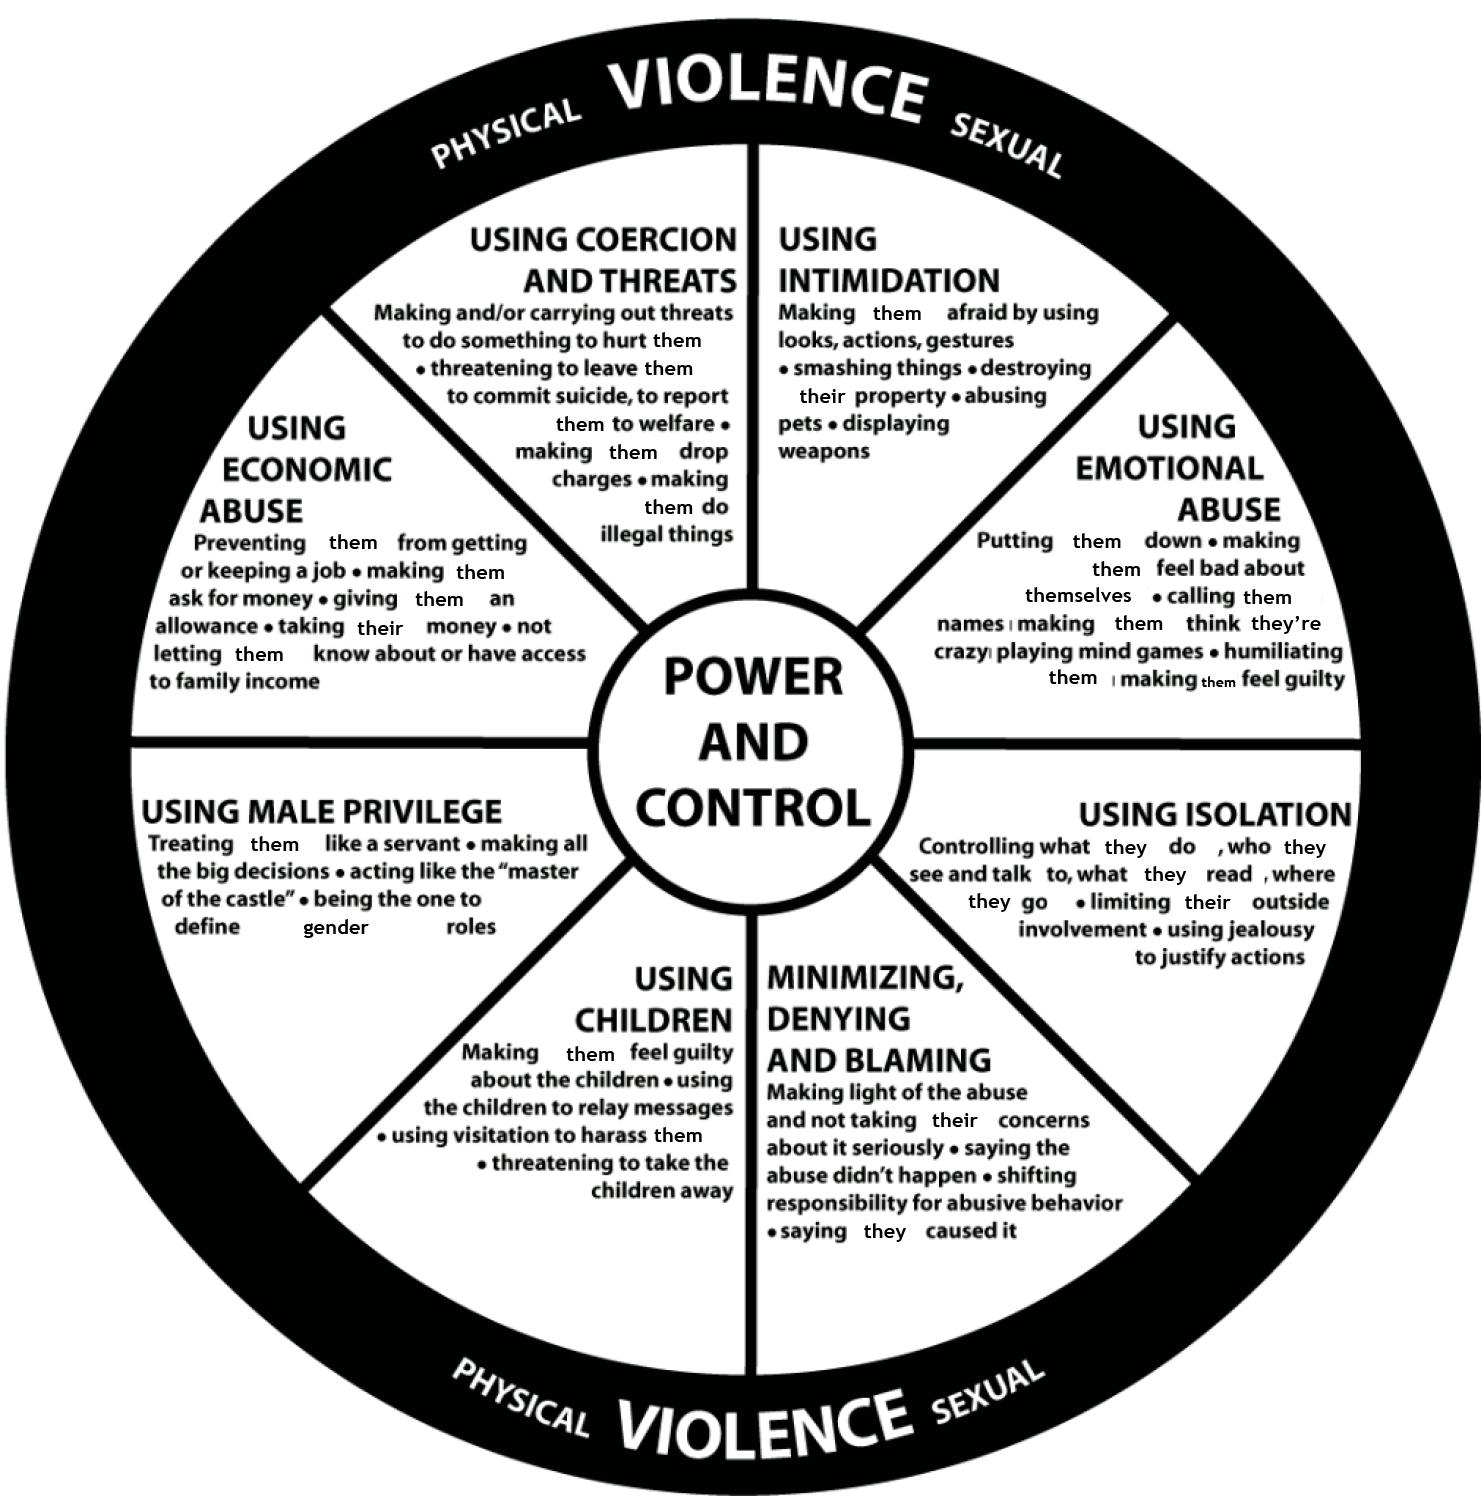 national center for victims of crime dating violence National center for victims of crime public policy issues: resources on hate crimes, dating violence/date rape and bullying and sexual harassment in schools.